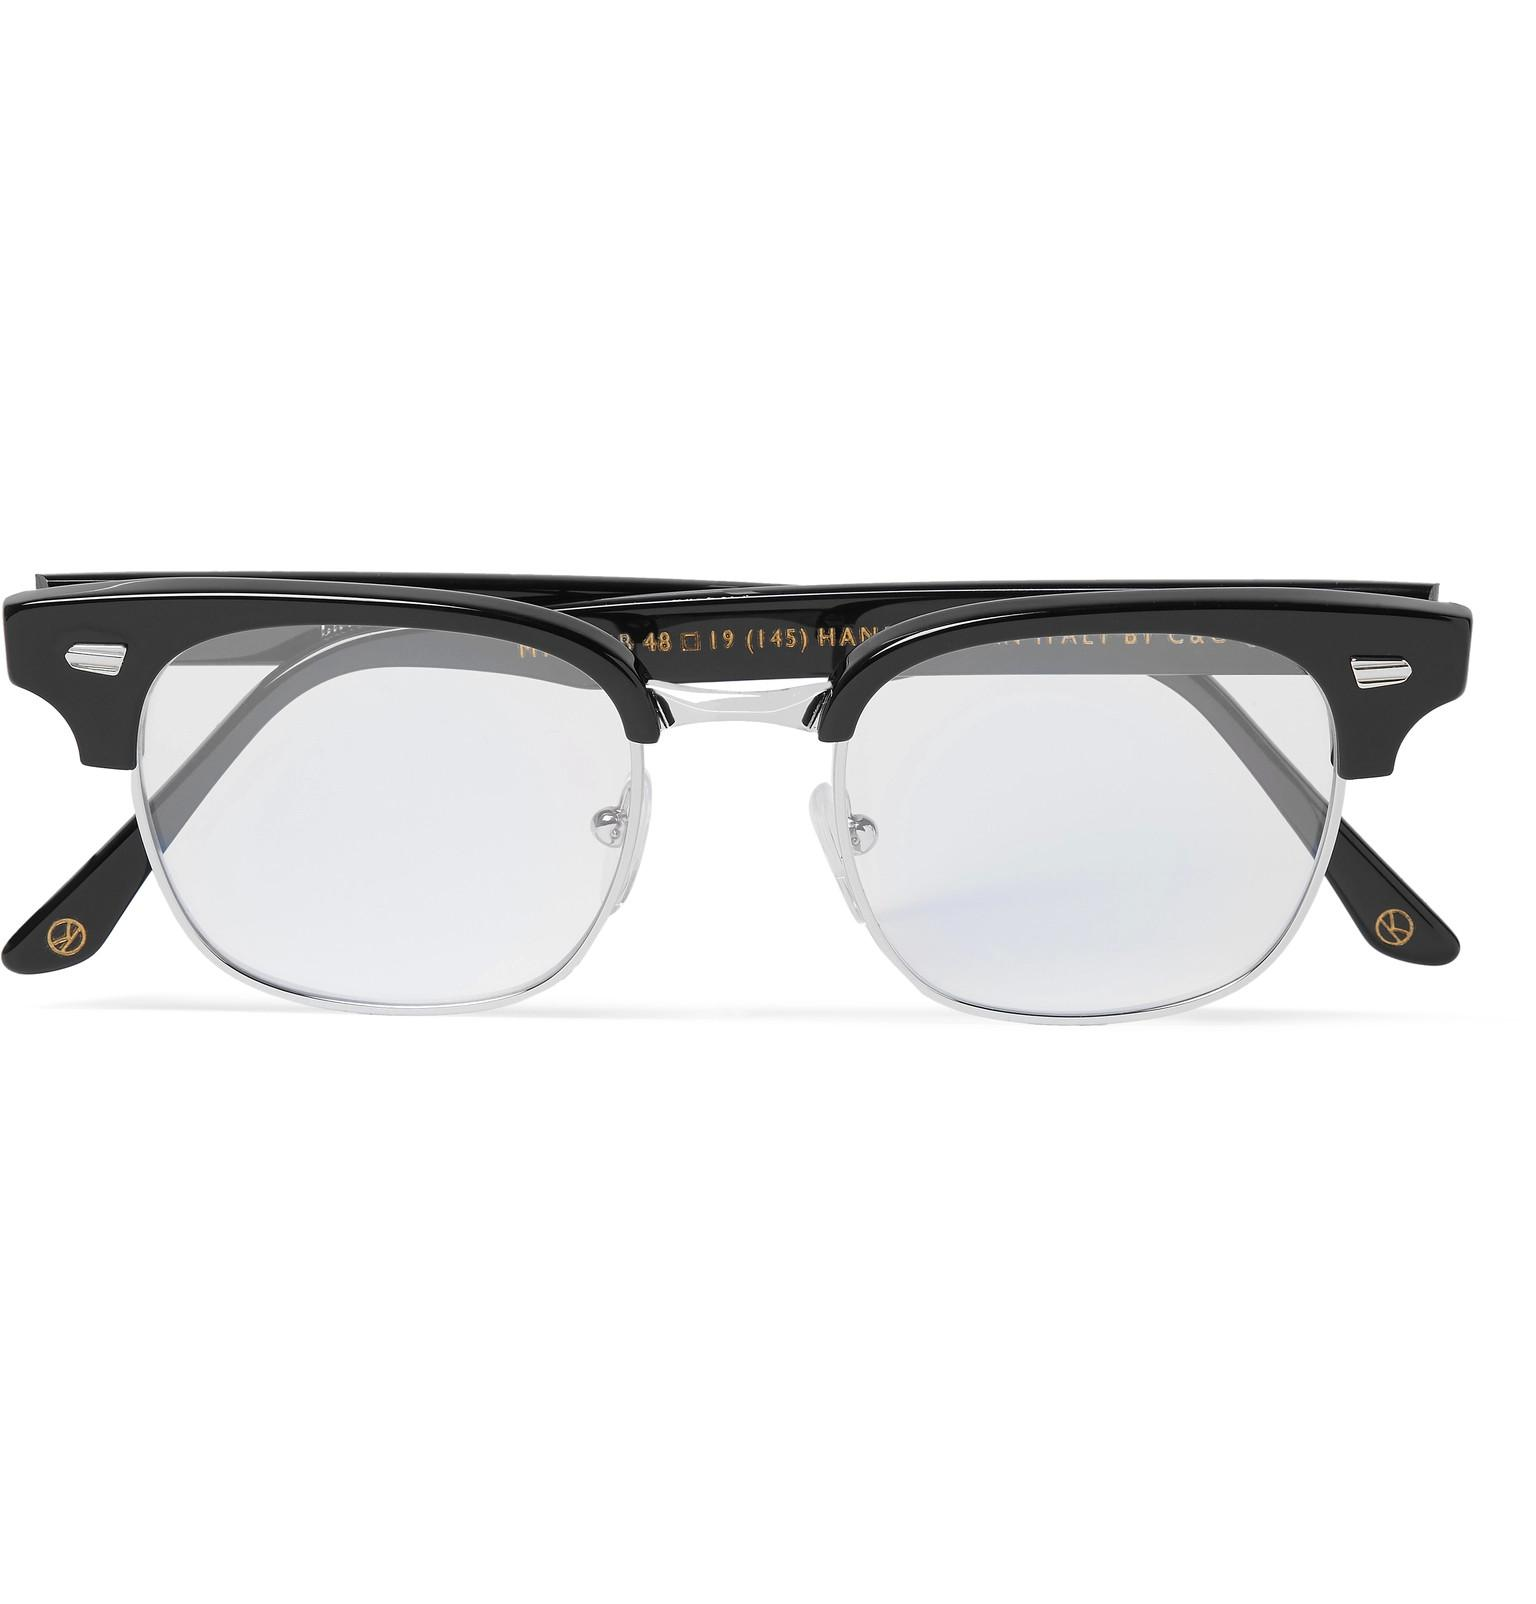 + Cutler And Gross Square-frame Tortoiseshell Acetate Sunglasses Kingsman F2iBdZLH